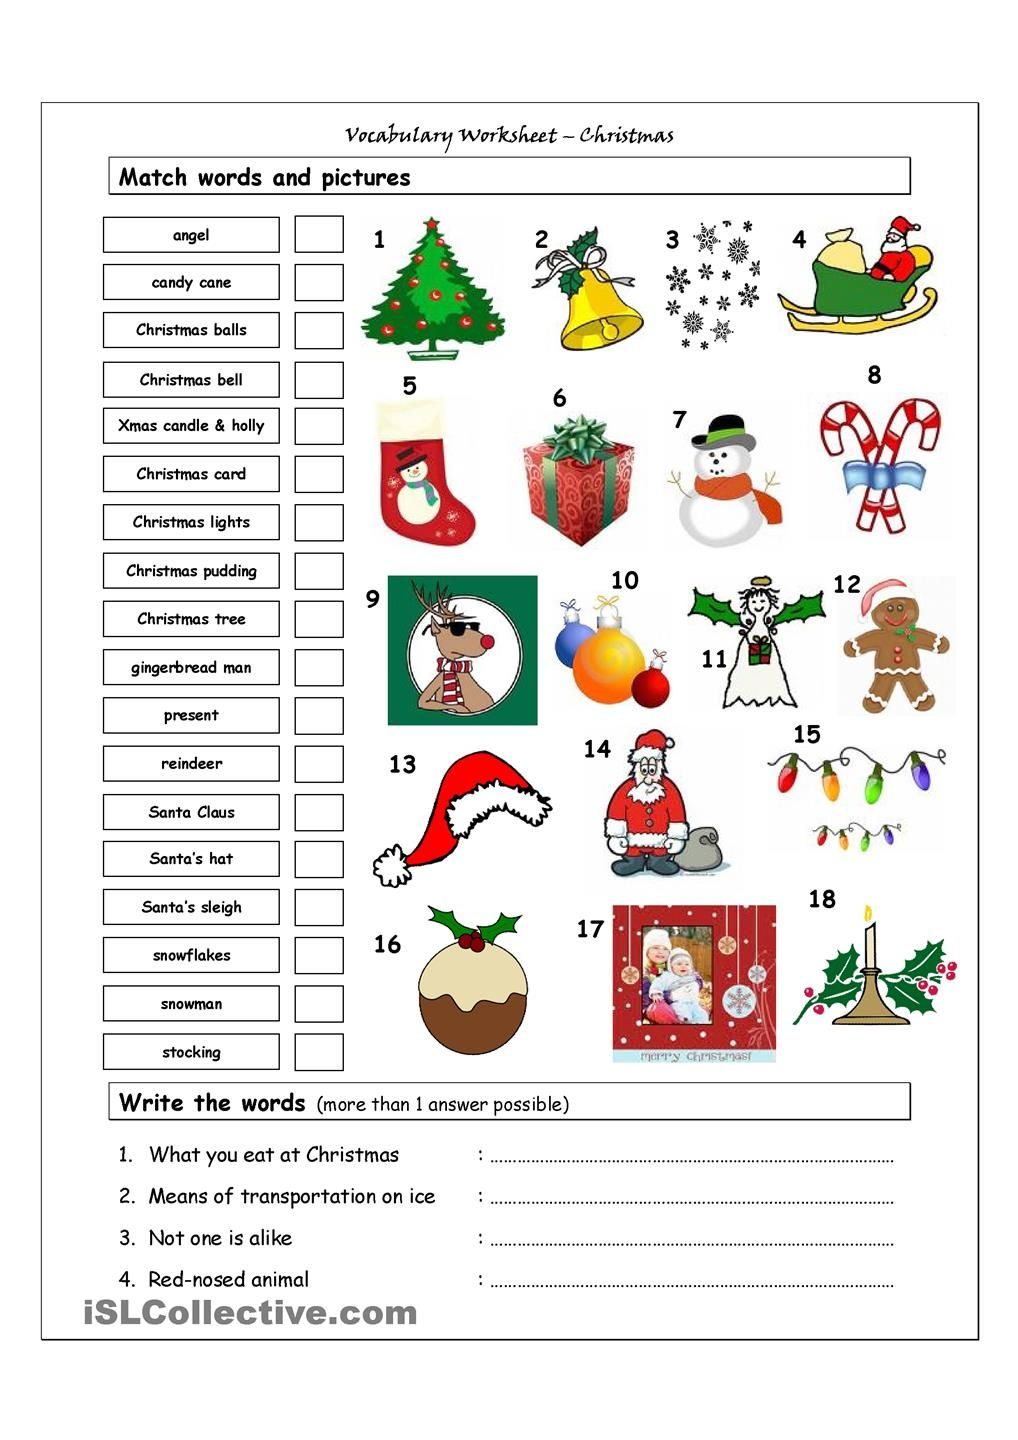 Vocabulary Matching Worksheet Xmas CHRISTMAS – Printable Christmas Worksheets